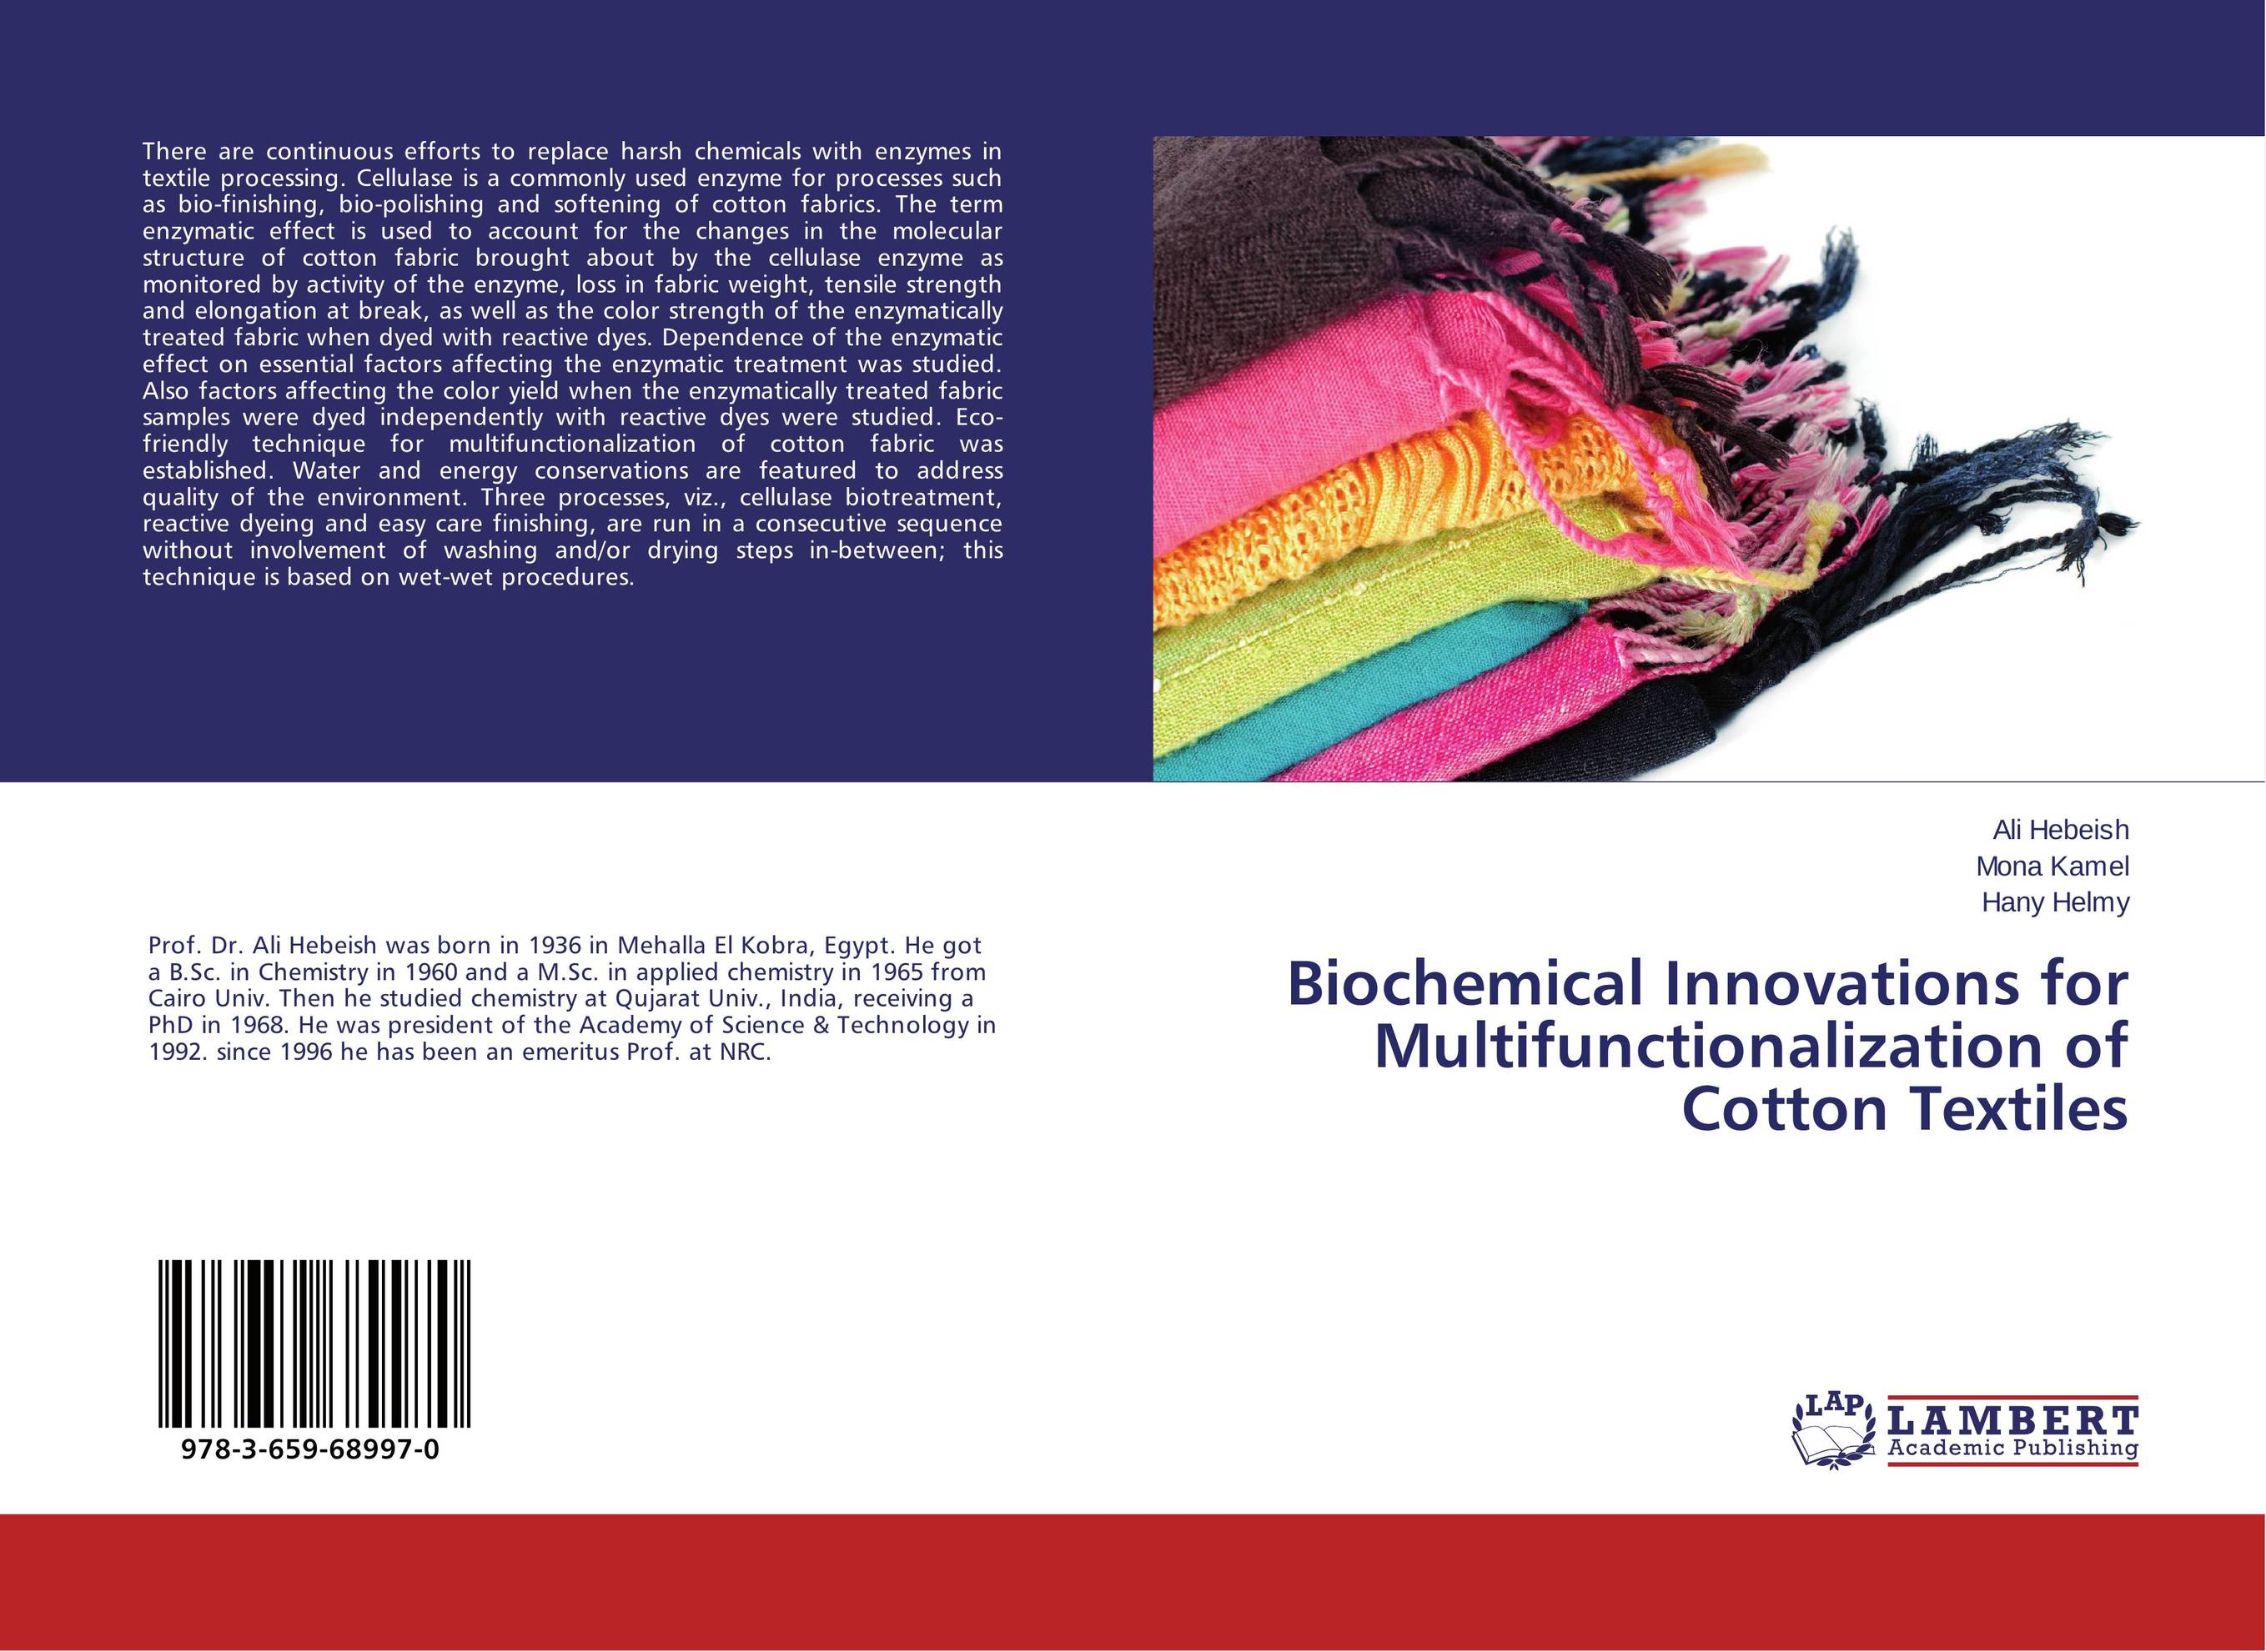 Biochemical Innovations for Multifunctionalization of Cotton Textiles cell diagnostics images biophysical and biochemical processes in allelopathy